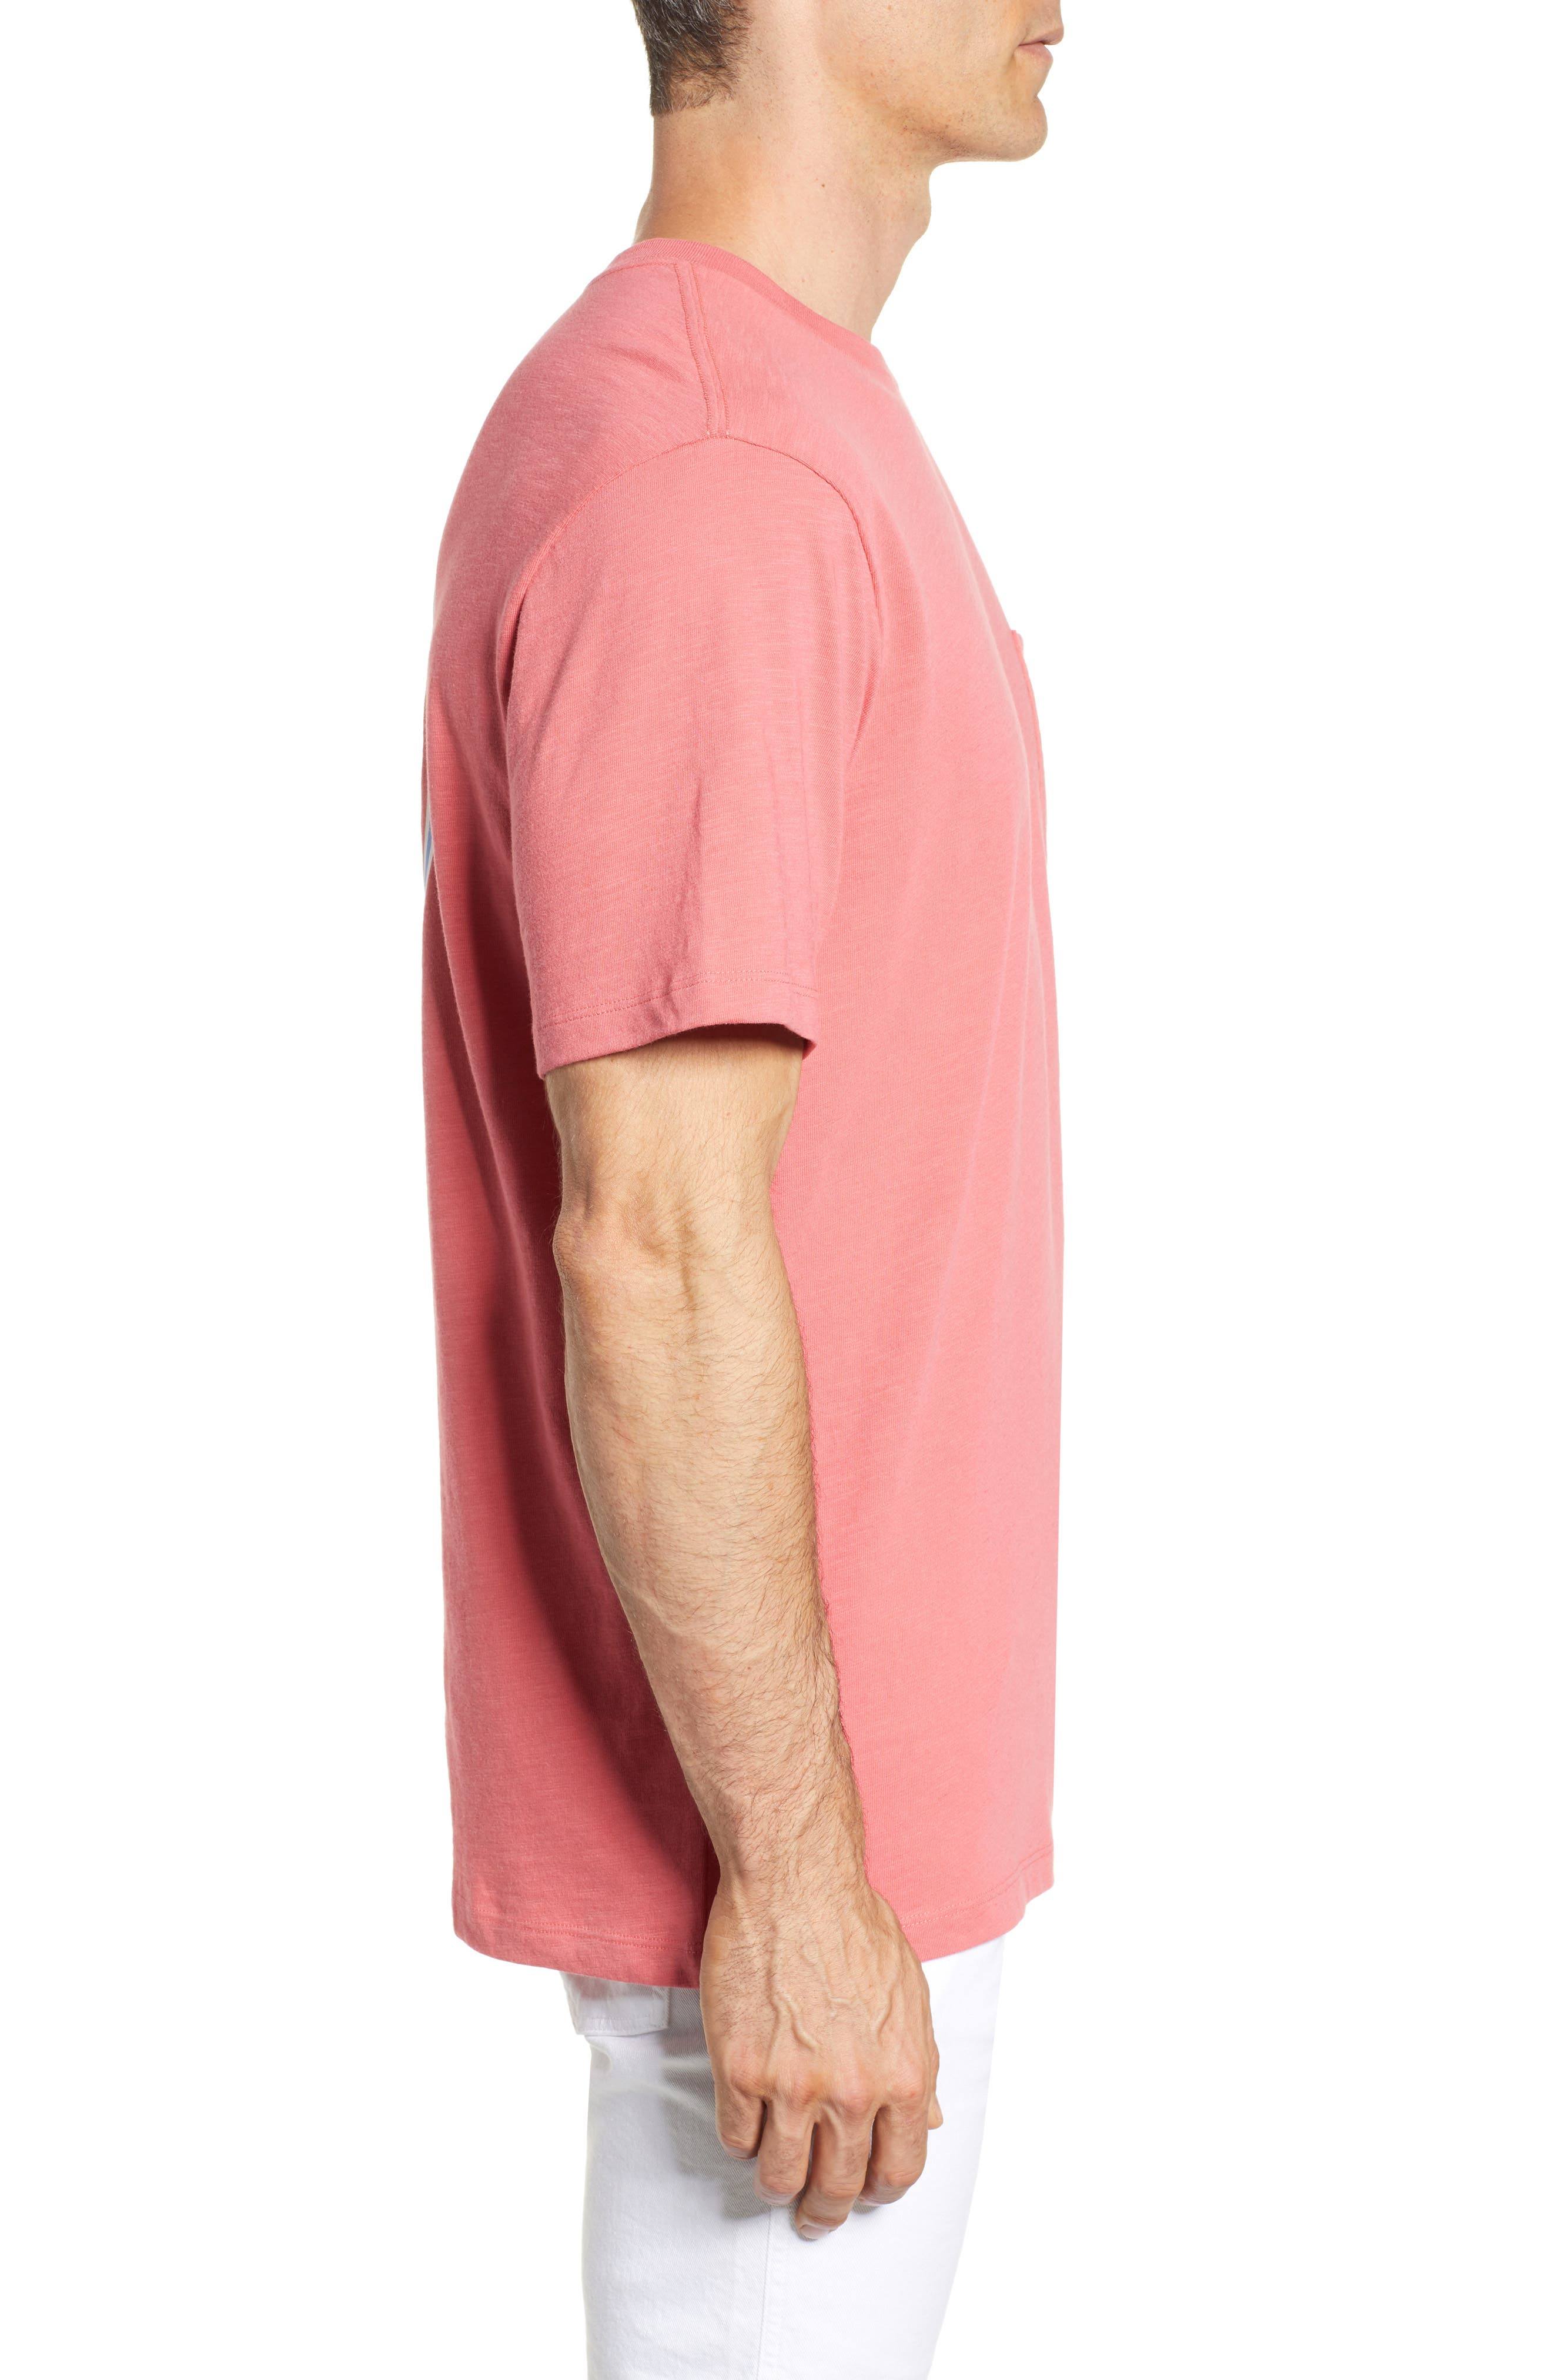 Every Day Should Feel This Good Pocket T-Shirt,                             Alternate thumbnail 3, color,                             628